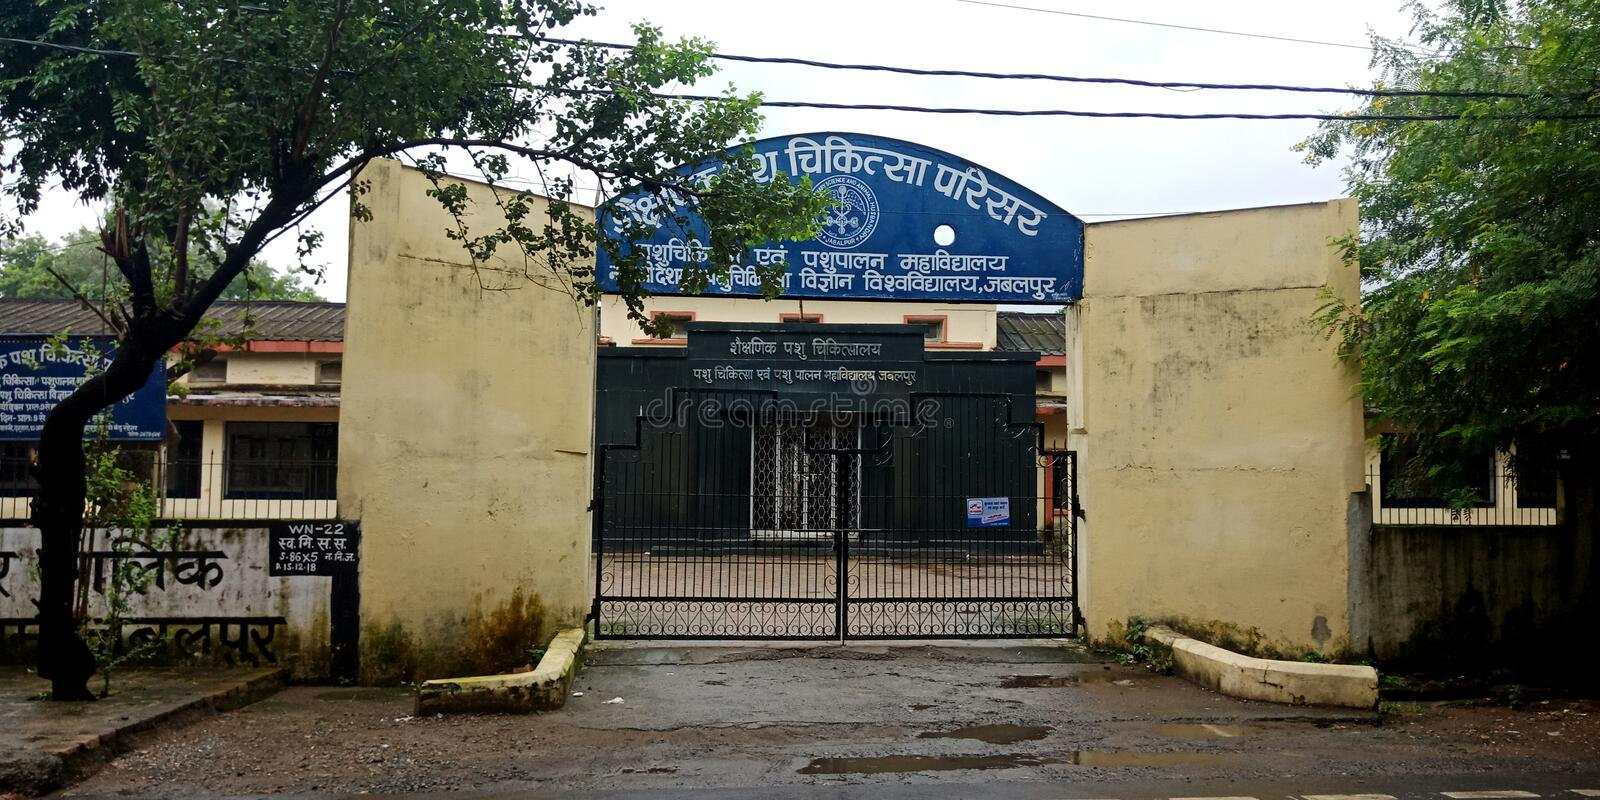 Animals health care center district jabalpur in India. Lal, nehru, indian, government, hospital, entrance, gate, lab, technician, girl, ing, samples royalty free stock photos